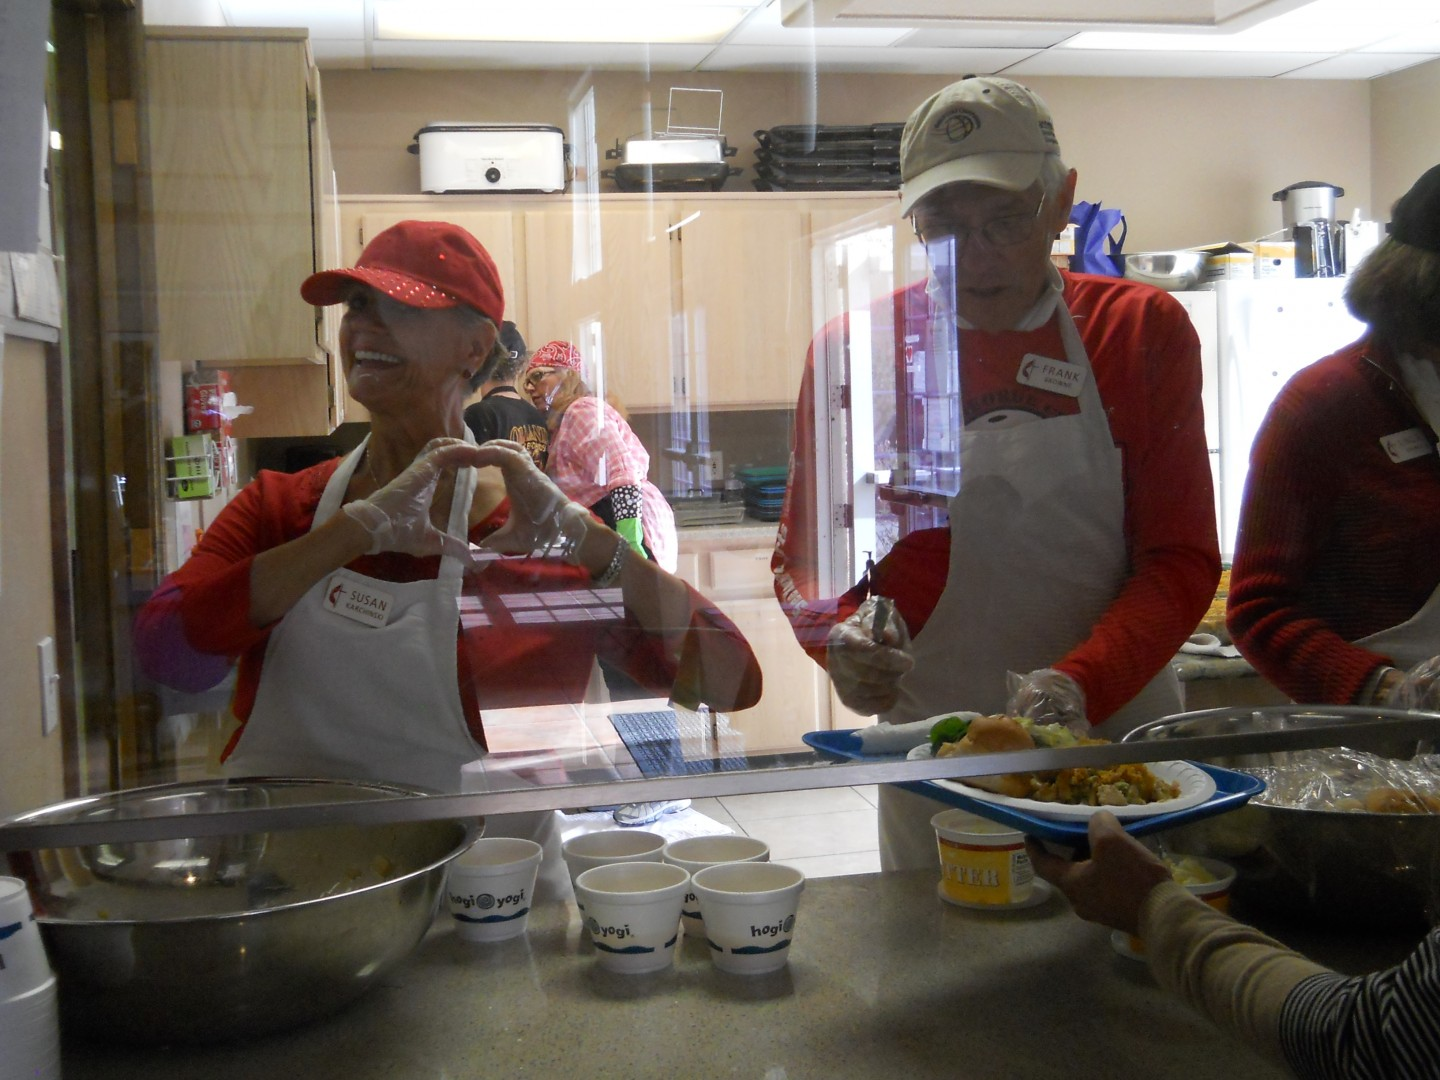 Volunteers serve casserole and show Valentine spirit at the community soup kitchen at Grace Episcopal Church, St. George, Utah, Feb. 14, 2014 | Photo by Aspen Stoddard, St. George News